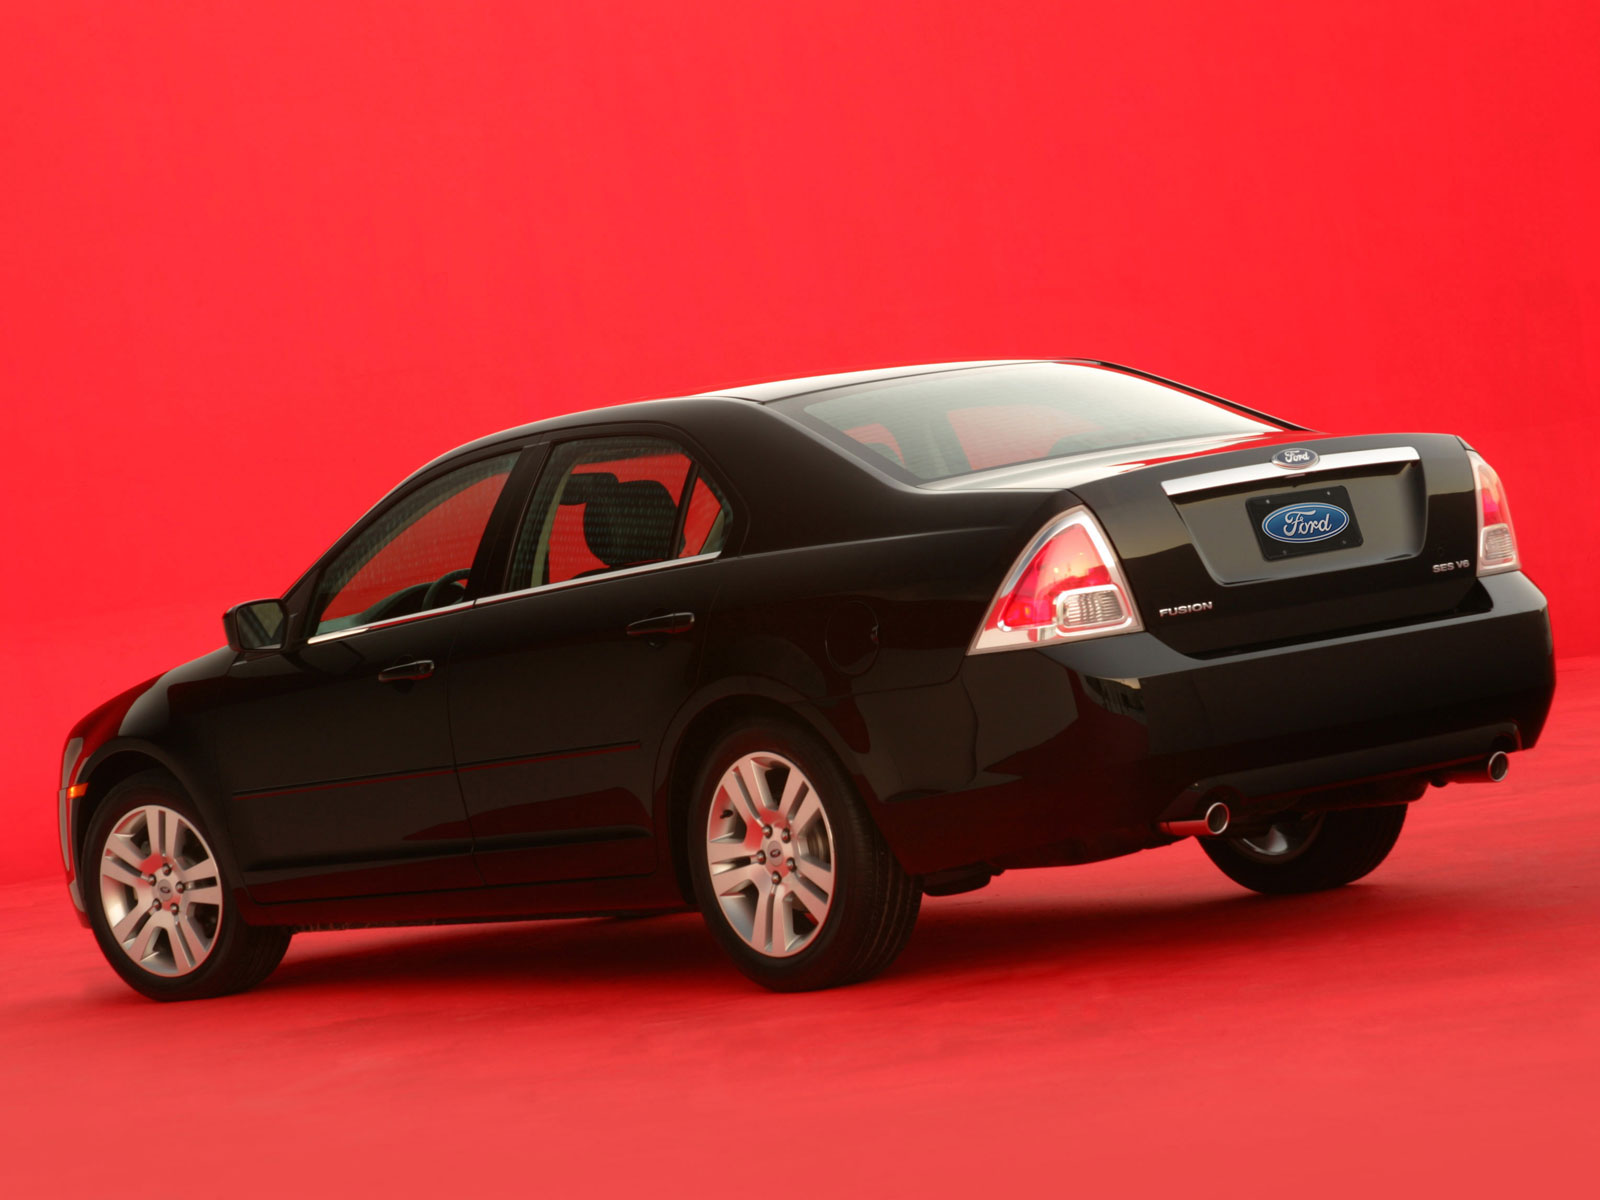 2006 Ford Fusion (c) Ford